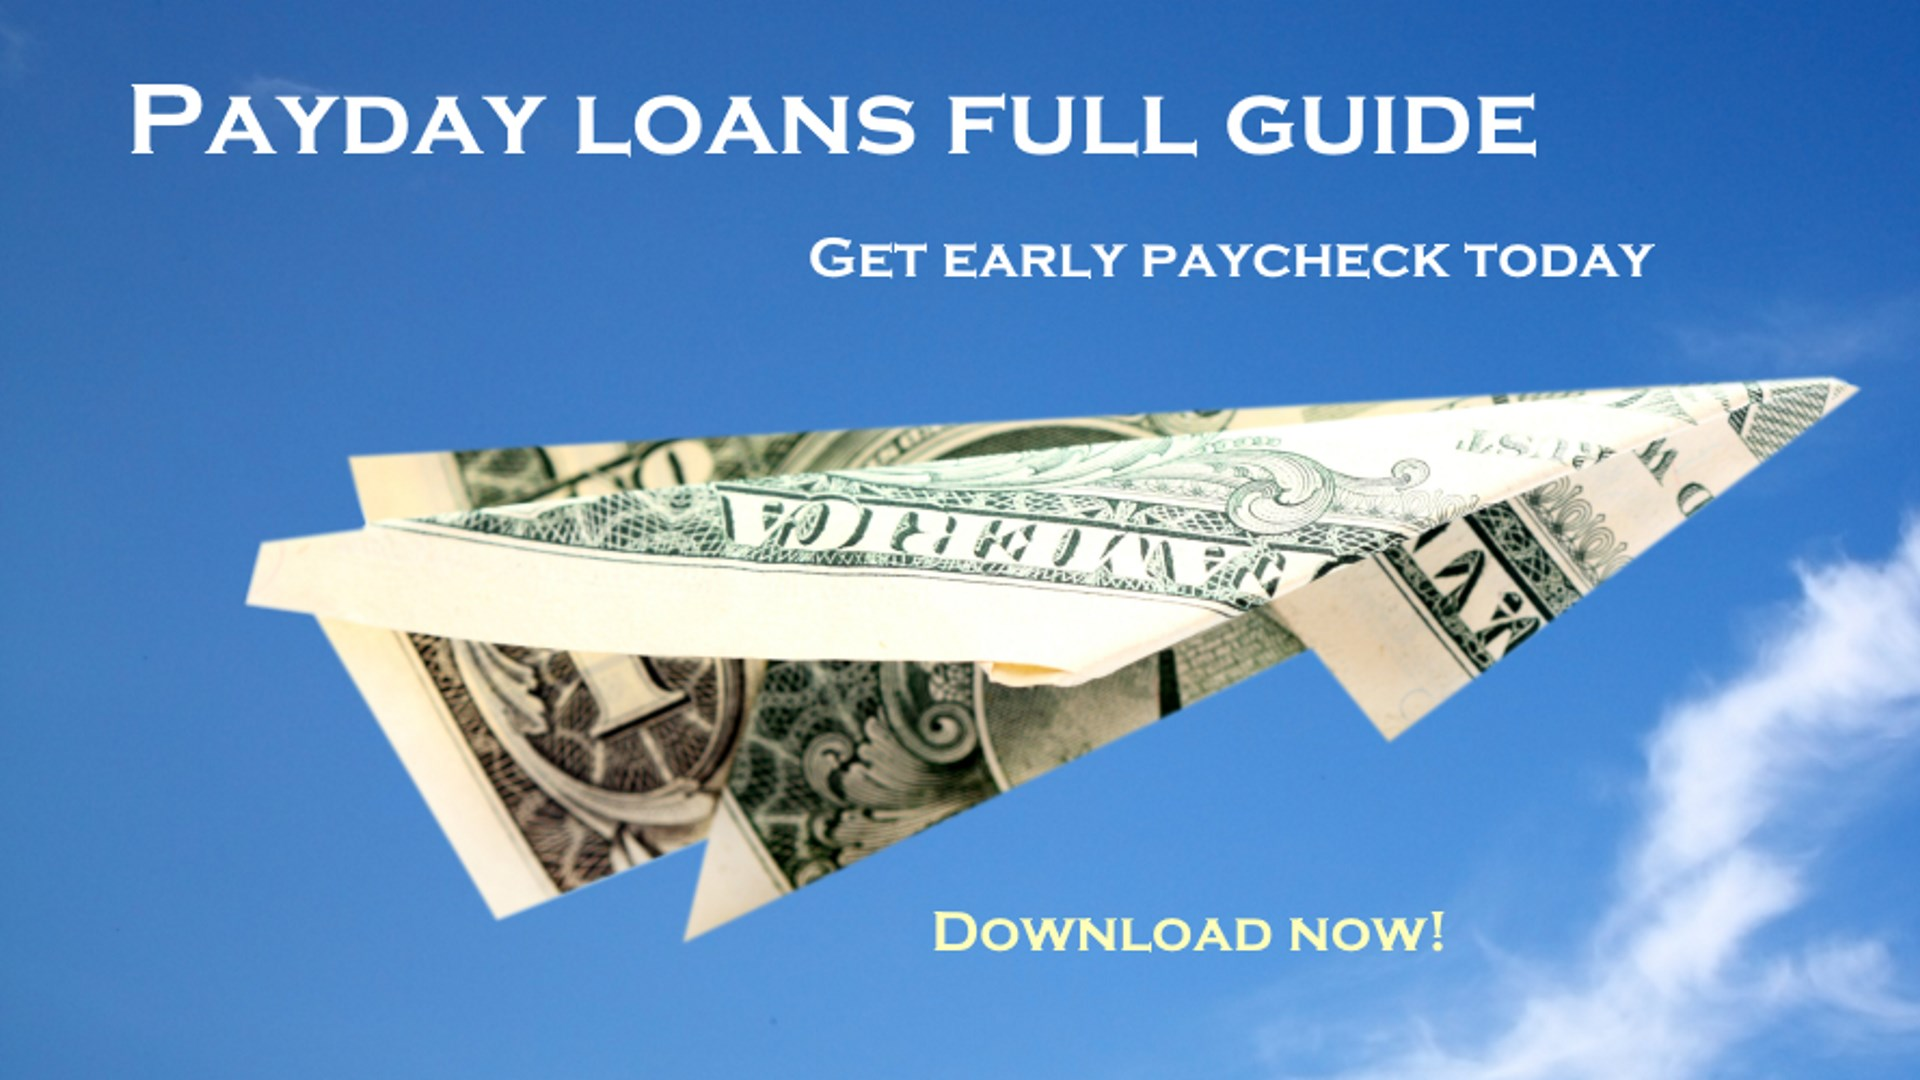 Cash Advance Loans >> Get Payday Advance Payday Loans Guide Early Paycheck